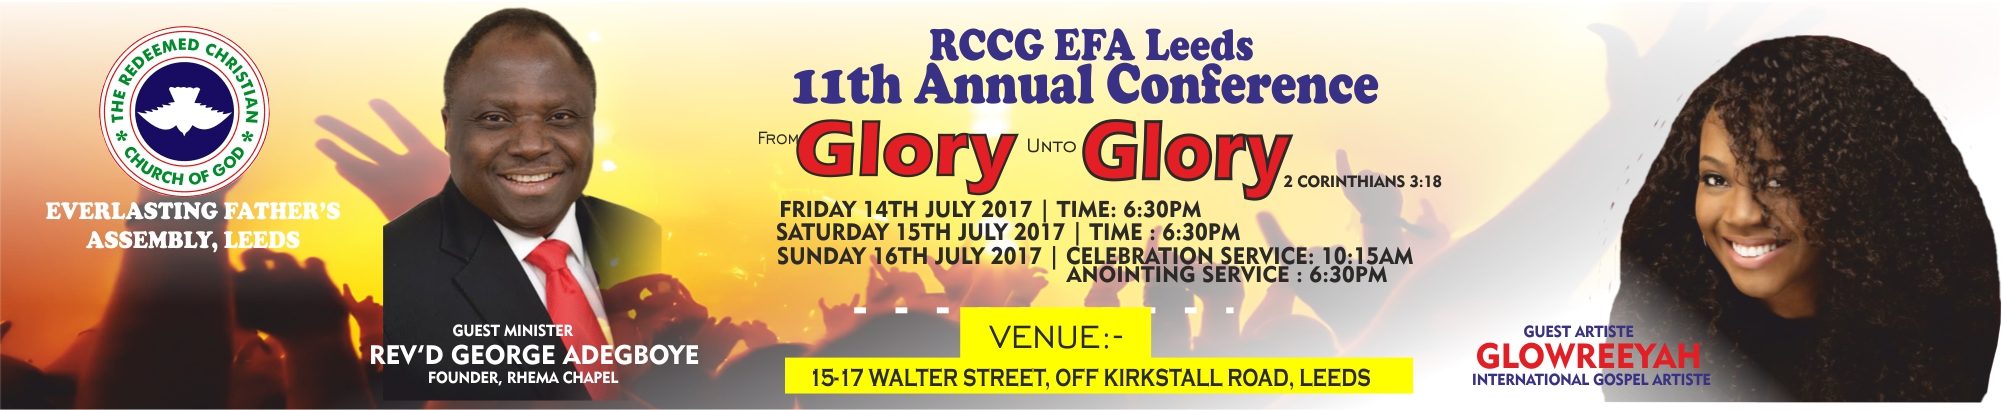 11th Annual Conference of RCCG EFA Leeds Holds July 14 – 16, 2017 at the Land of Mercy